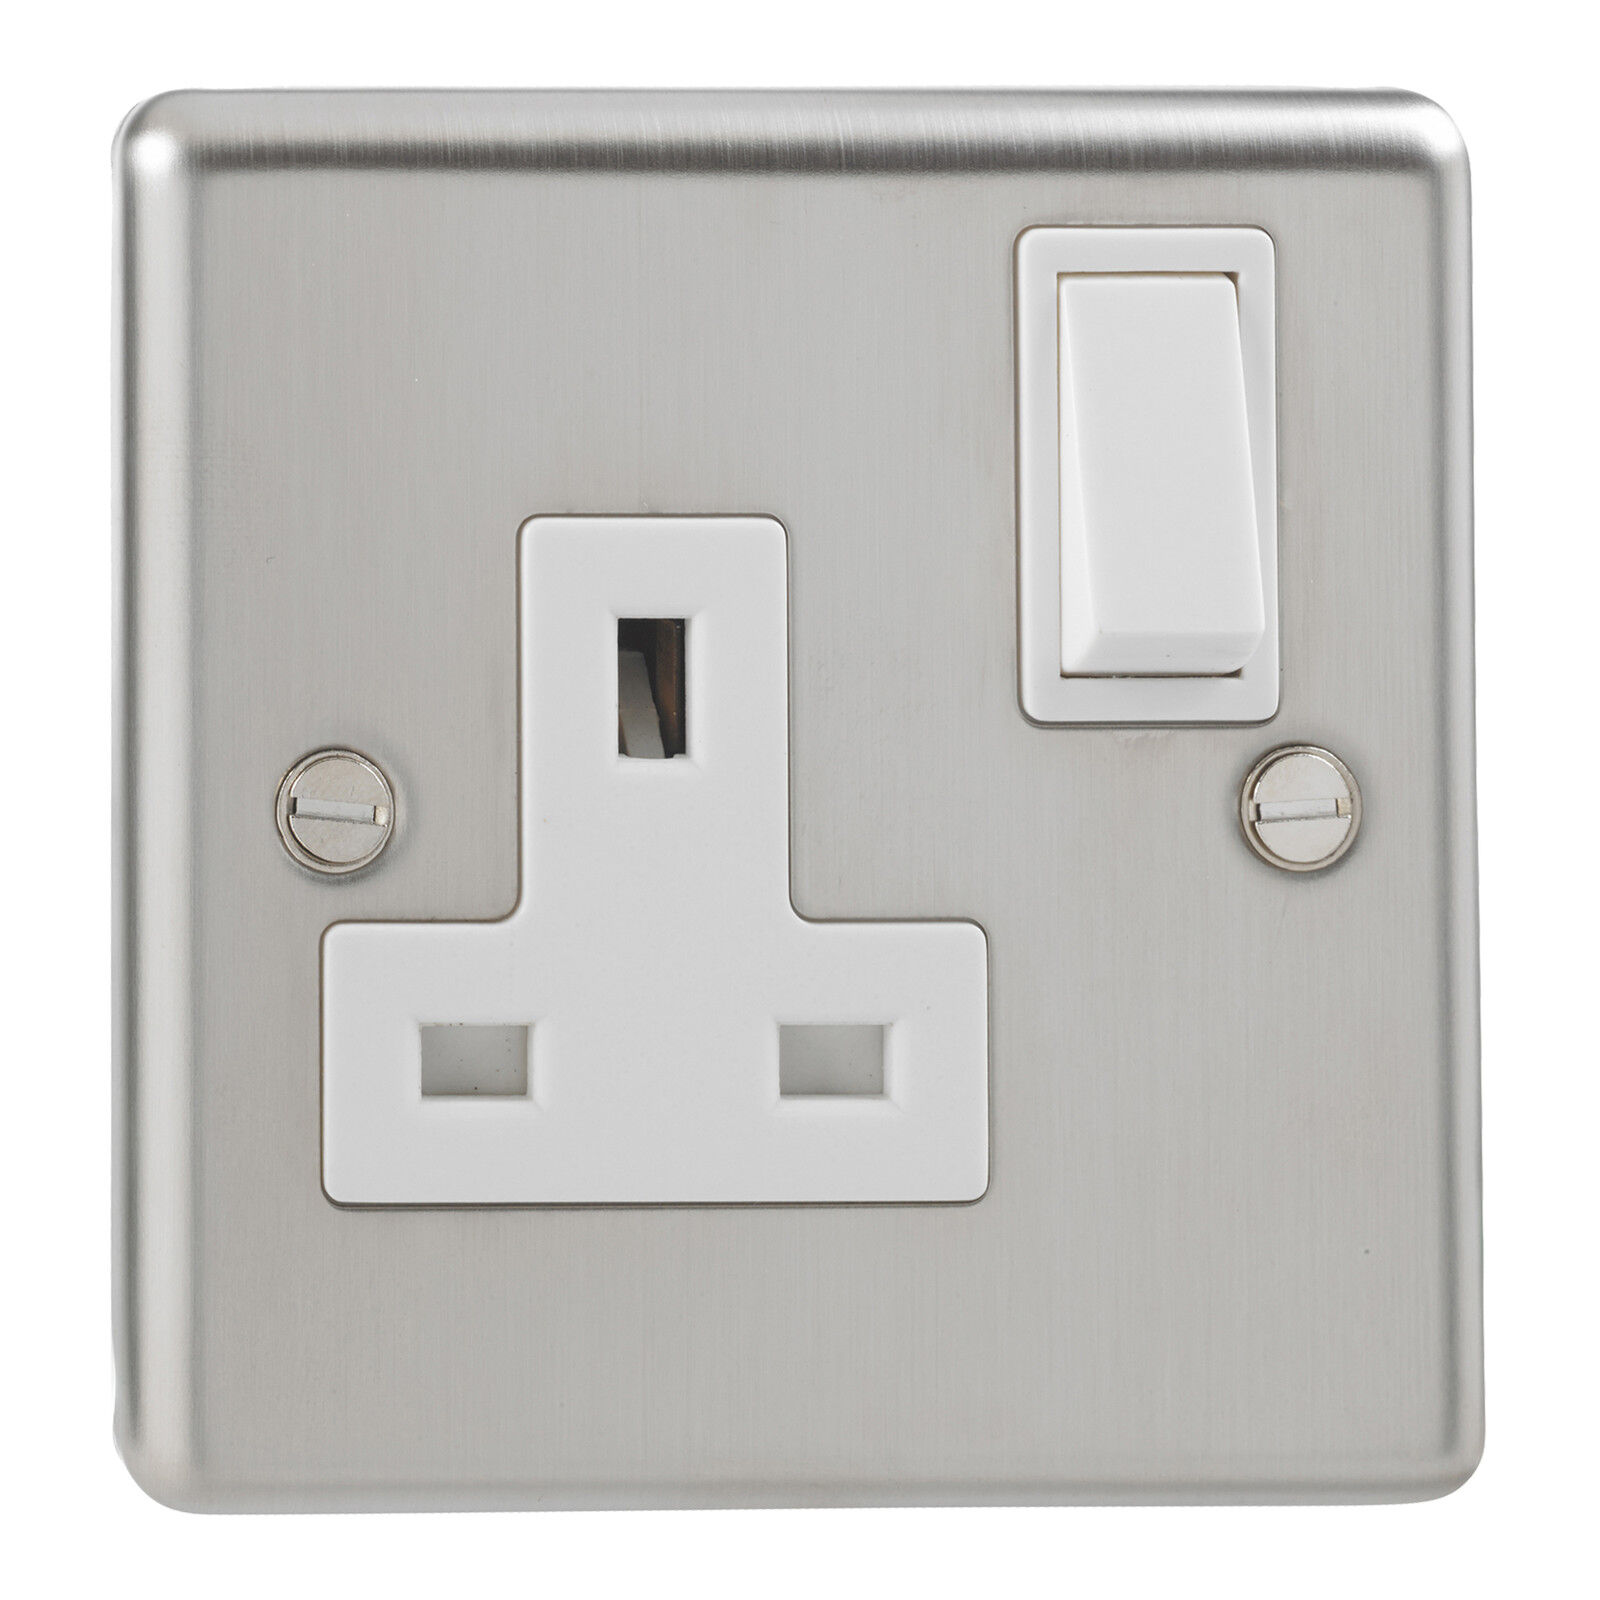 SST721 13A DP 1 Gang Switched Socket Stainless Finish White Inserts